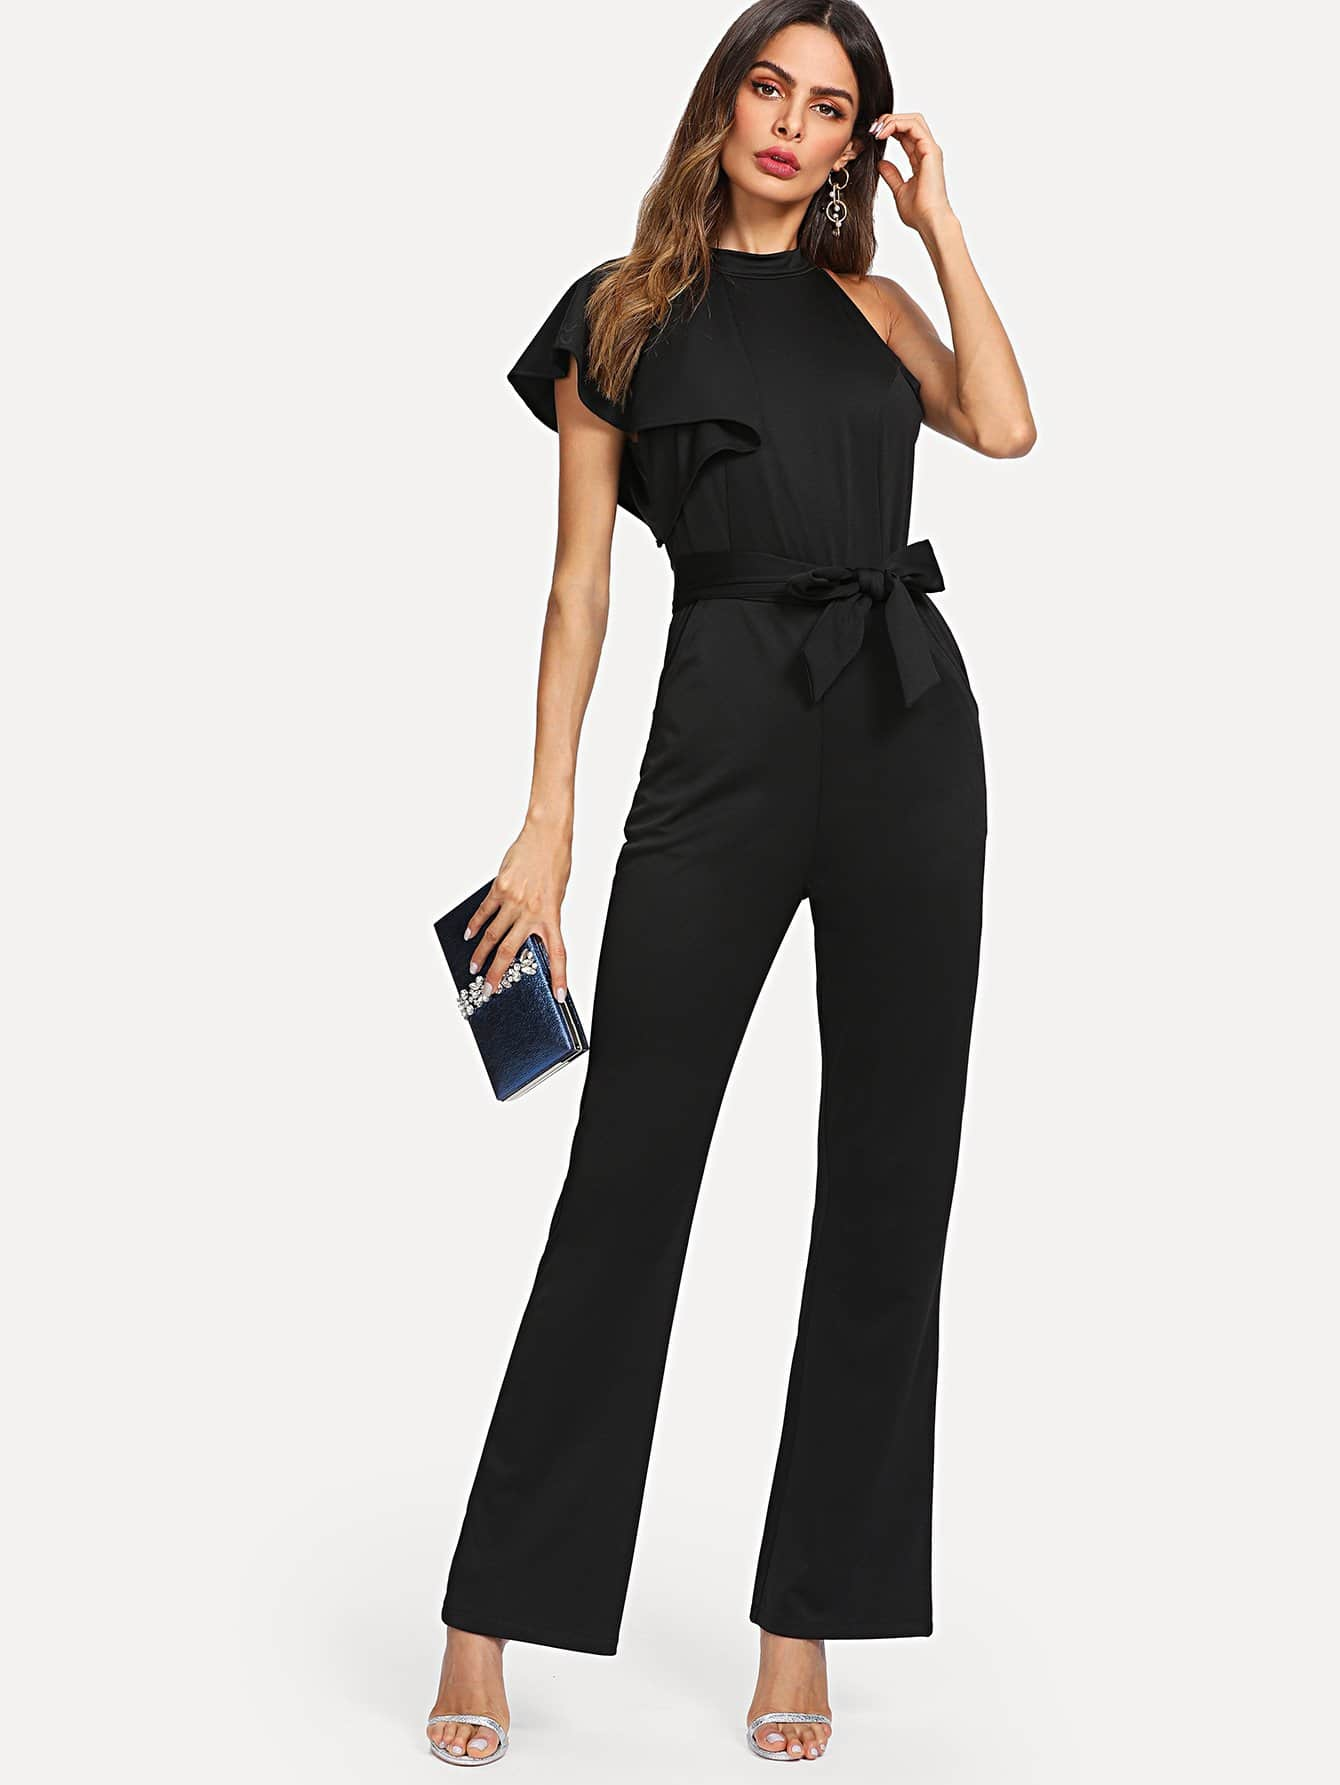 Self Tie Waist One Side Ruffle Sleeve Jumpsuit self tie waist batwing sleeve dress